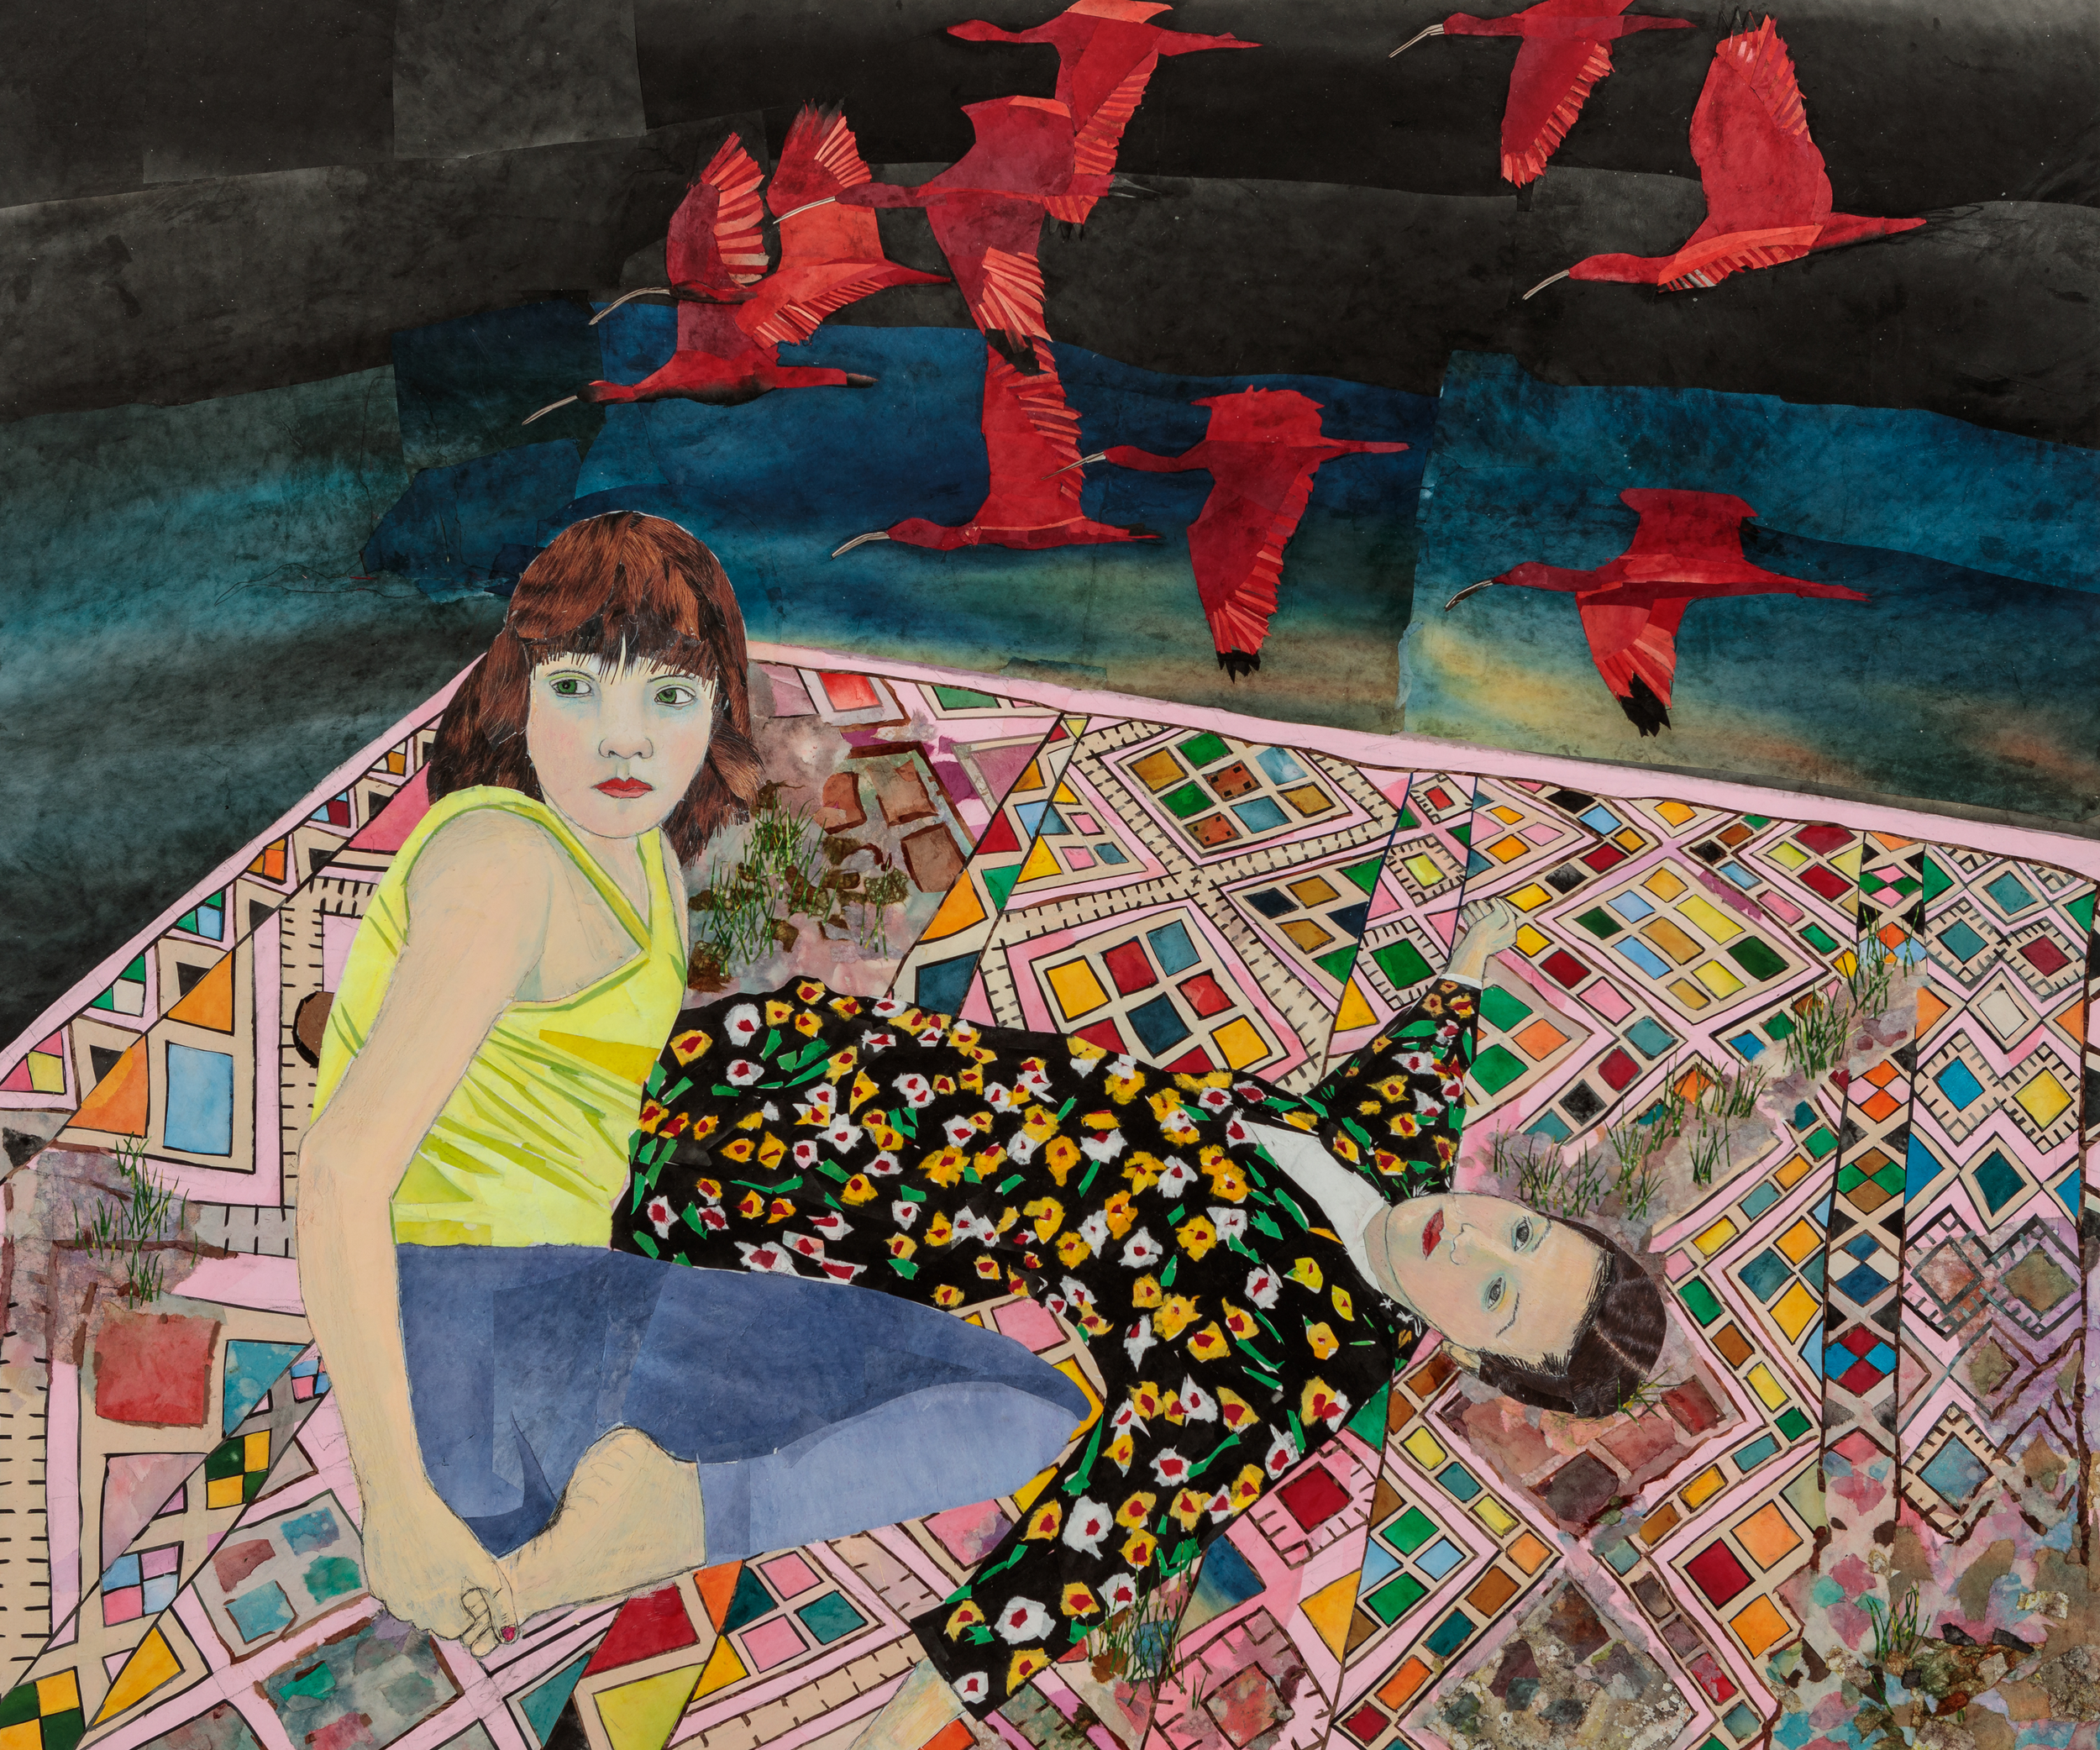 María Berrío,  The Dream of Flight , 2019, collage with Japanese paper and watercolor paint, 60 x 72 inches. Courtesy the artist and Kohn Gallery.